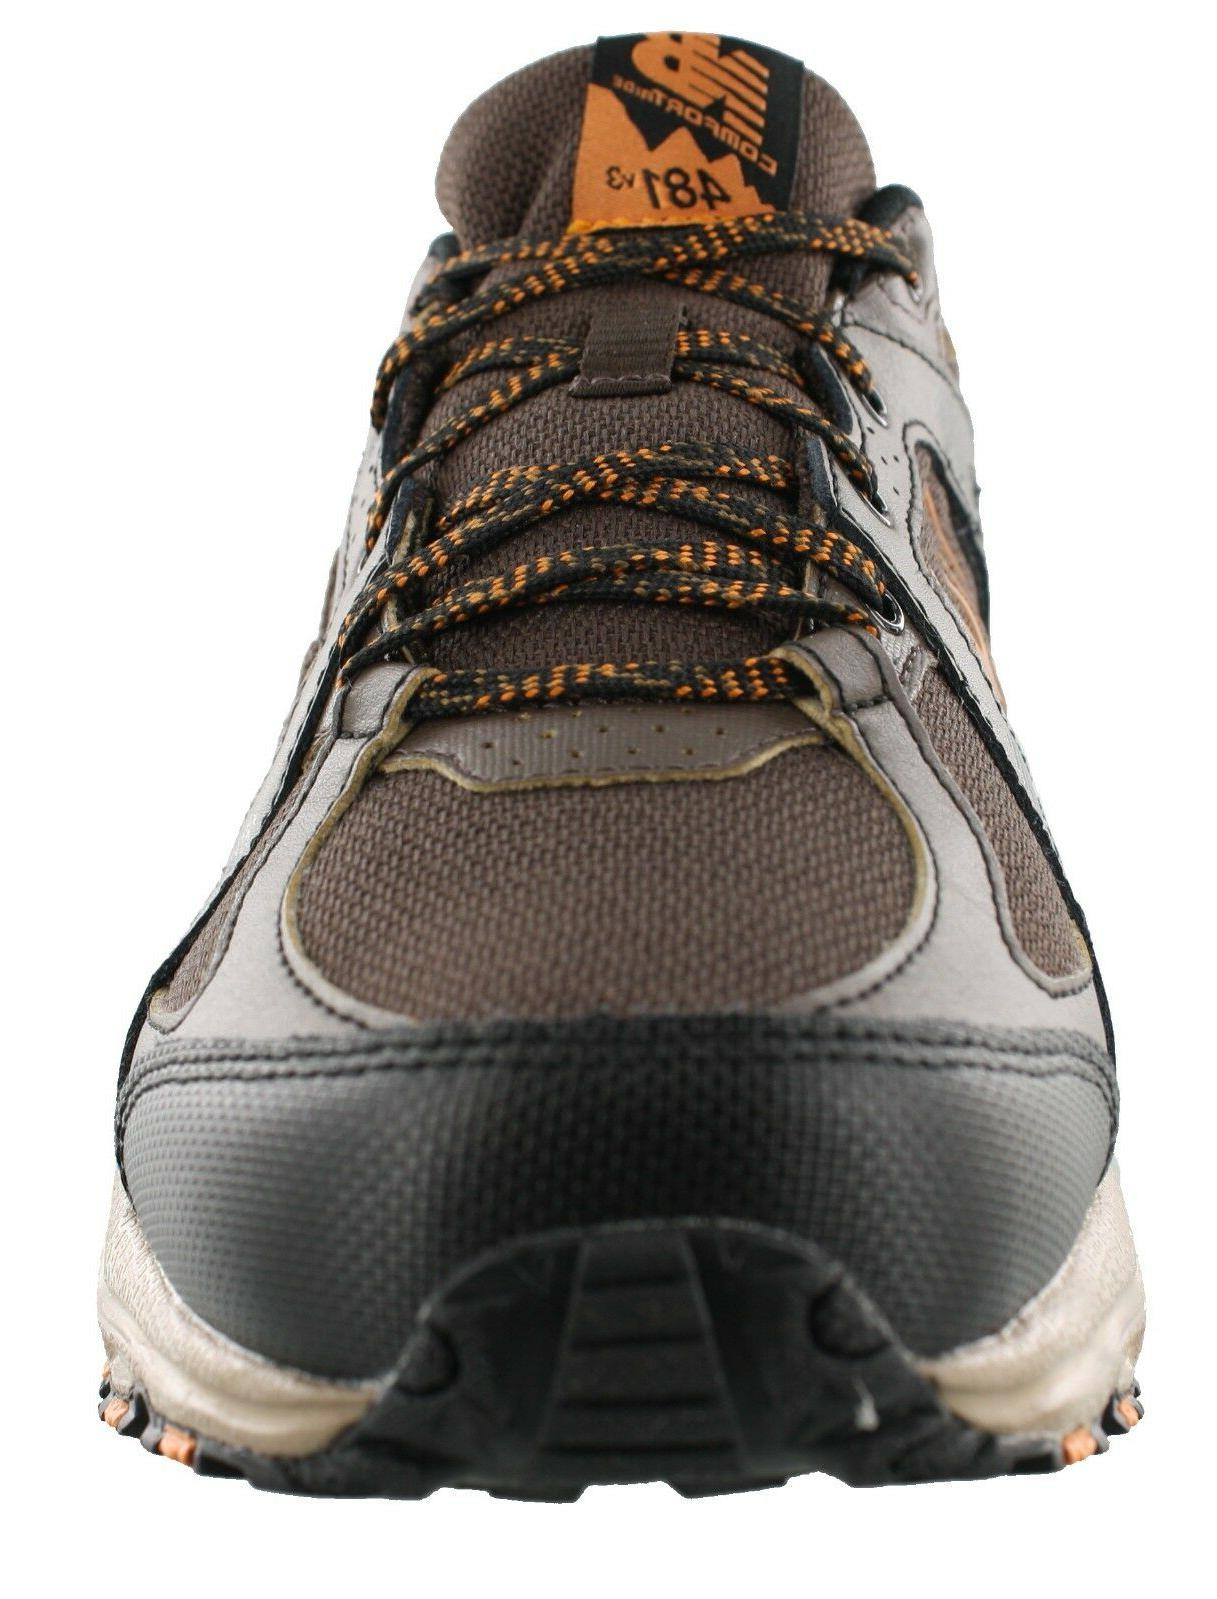 NEW BALANCE MT481WC3 4E WIDE WIDTH RESISTANT TRAIL RUNNING